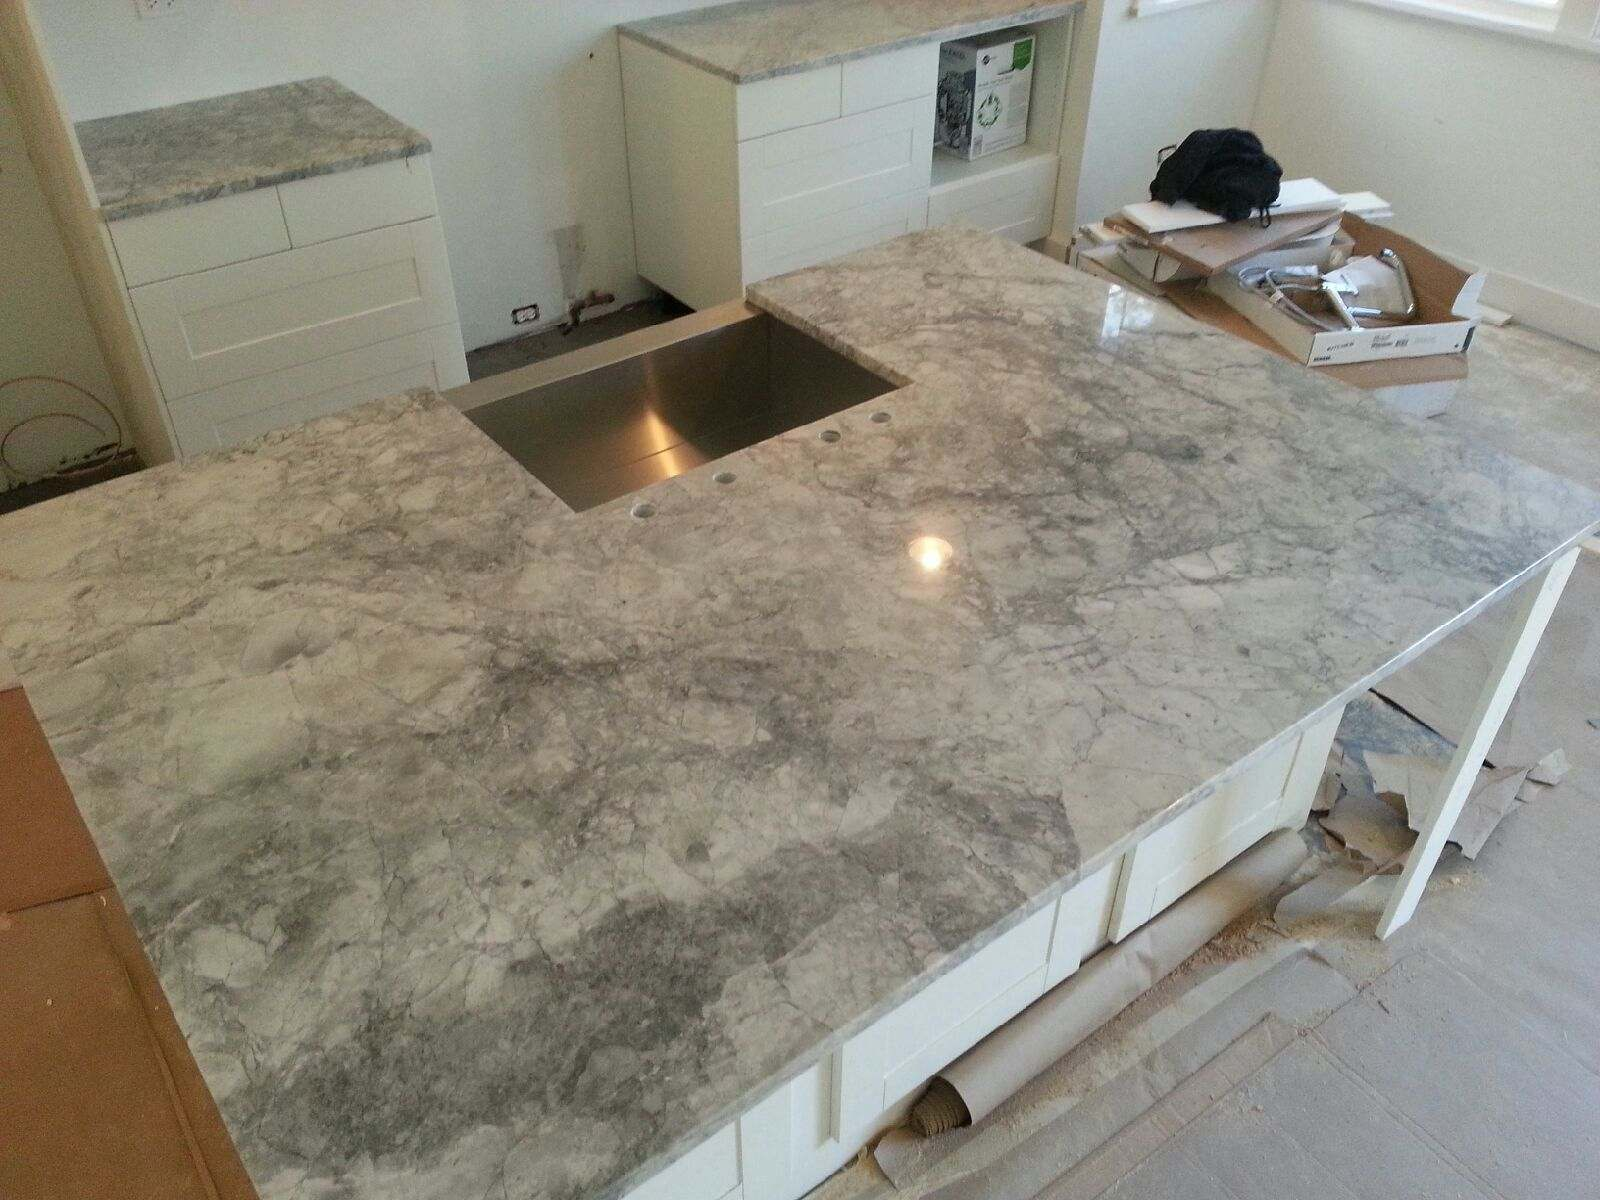 s images trevornace granit granite countertop countertops forbes vs perspective quartz sites com a geologists geologist